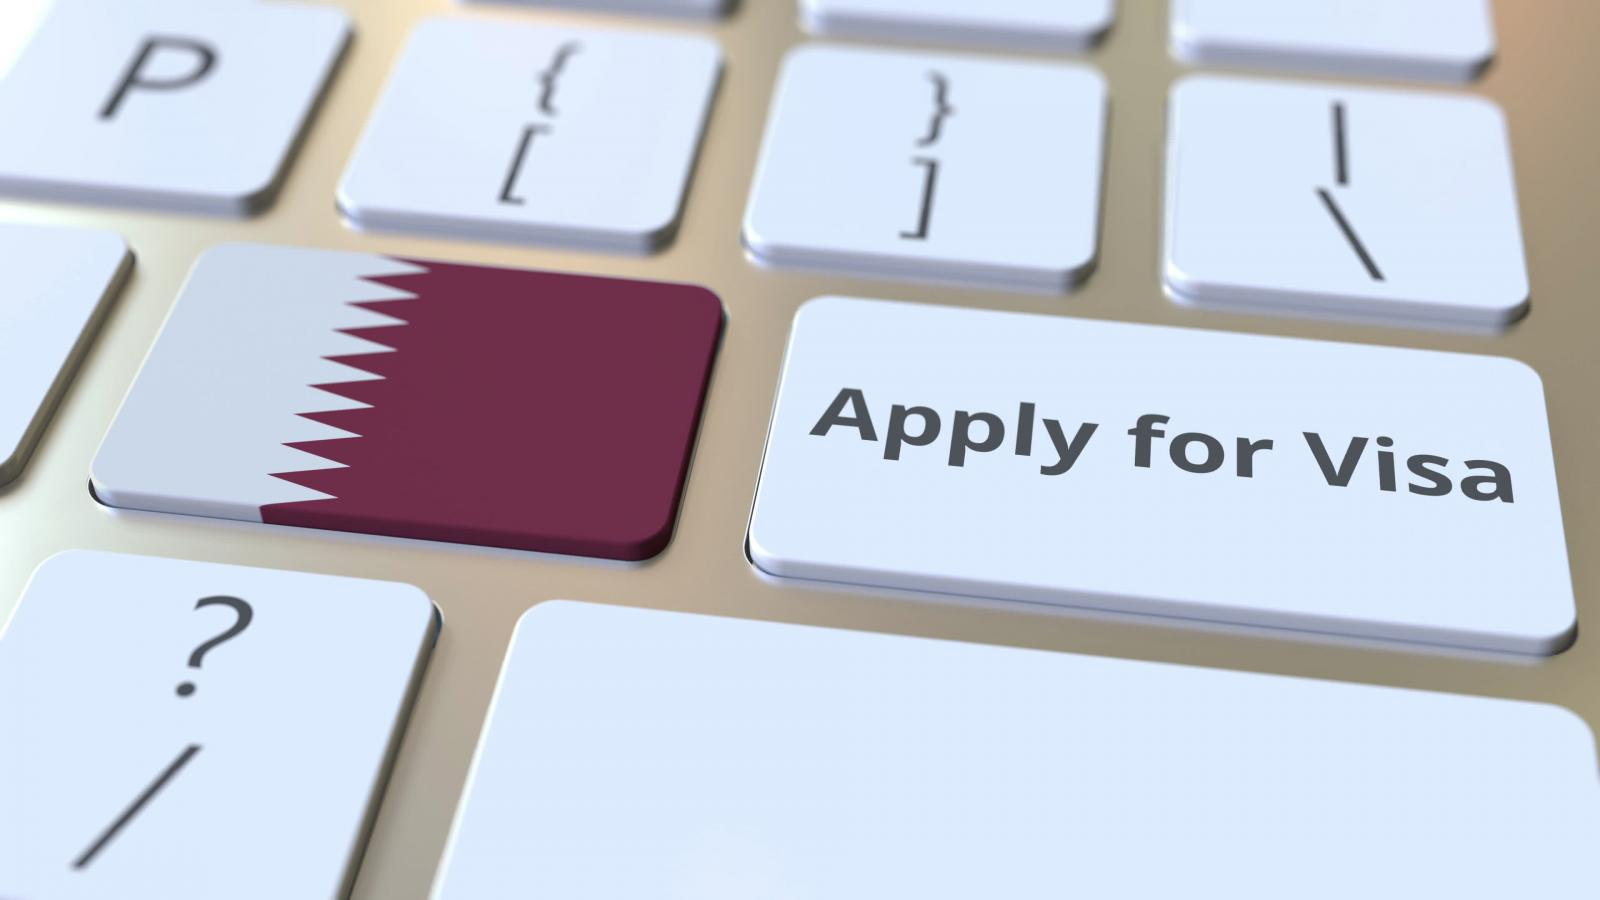 How to apply for Qatar family visit visa online